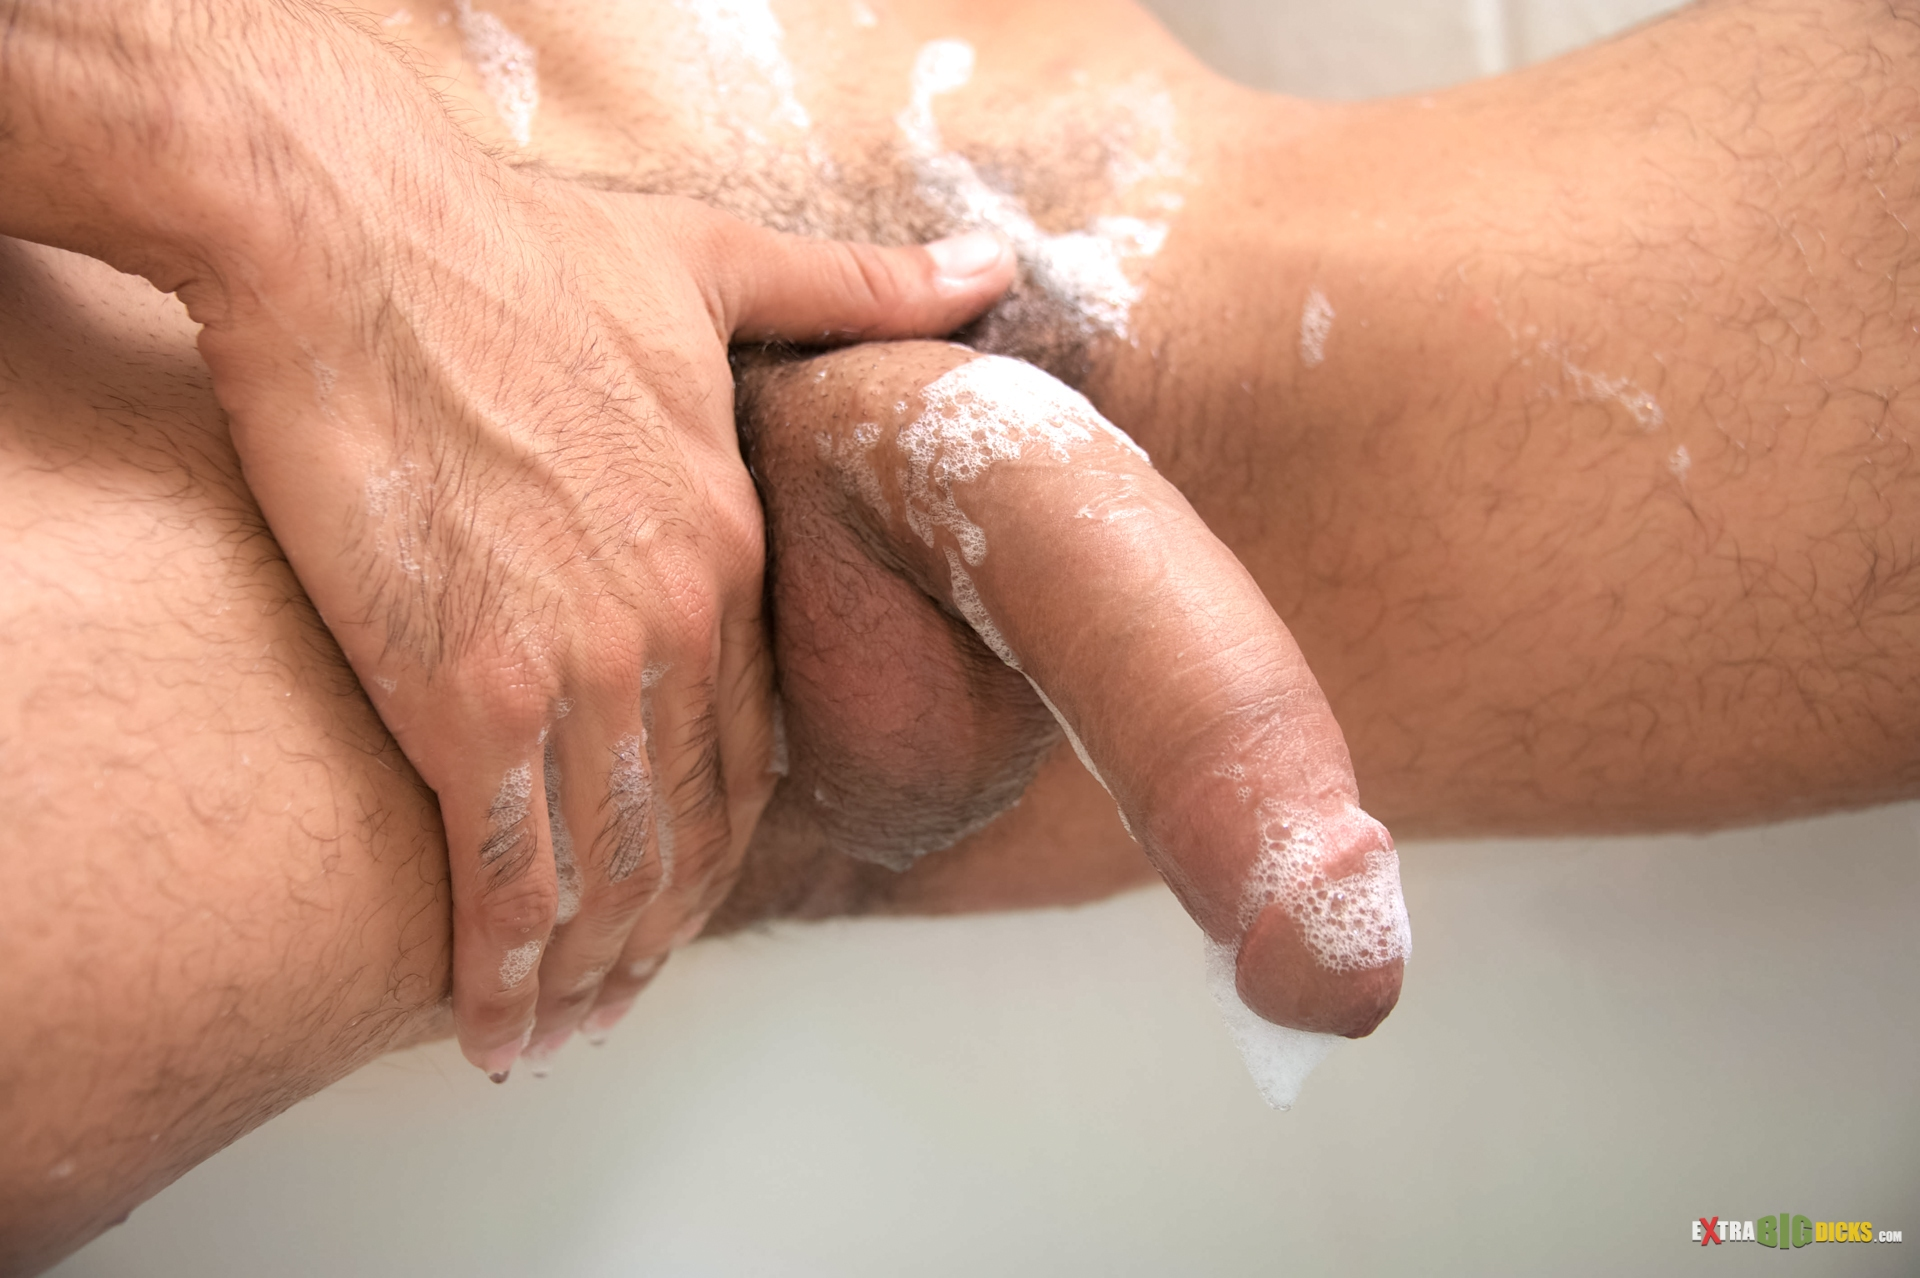 Extra Big Dicks – Nothing Like A Clean Cock